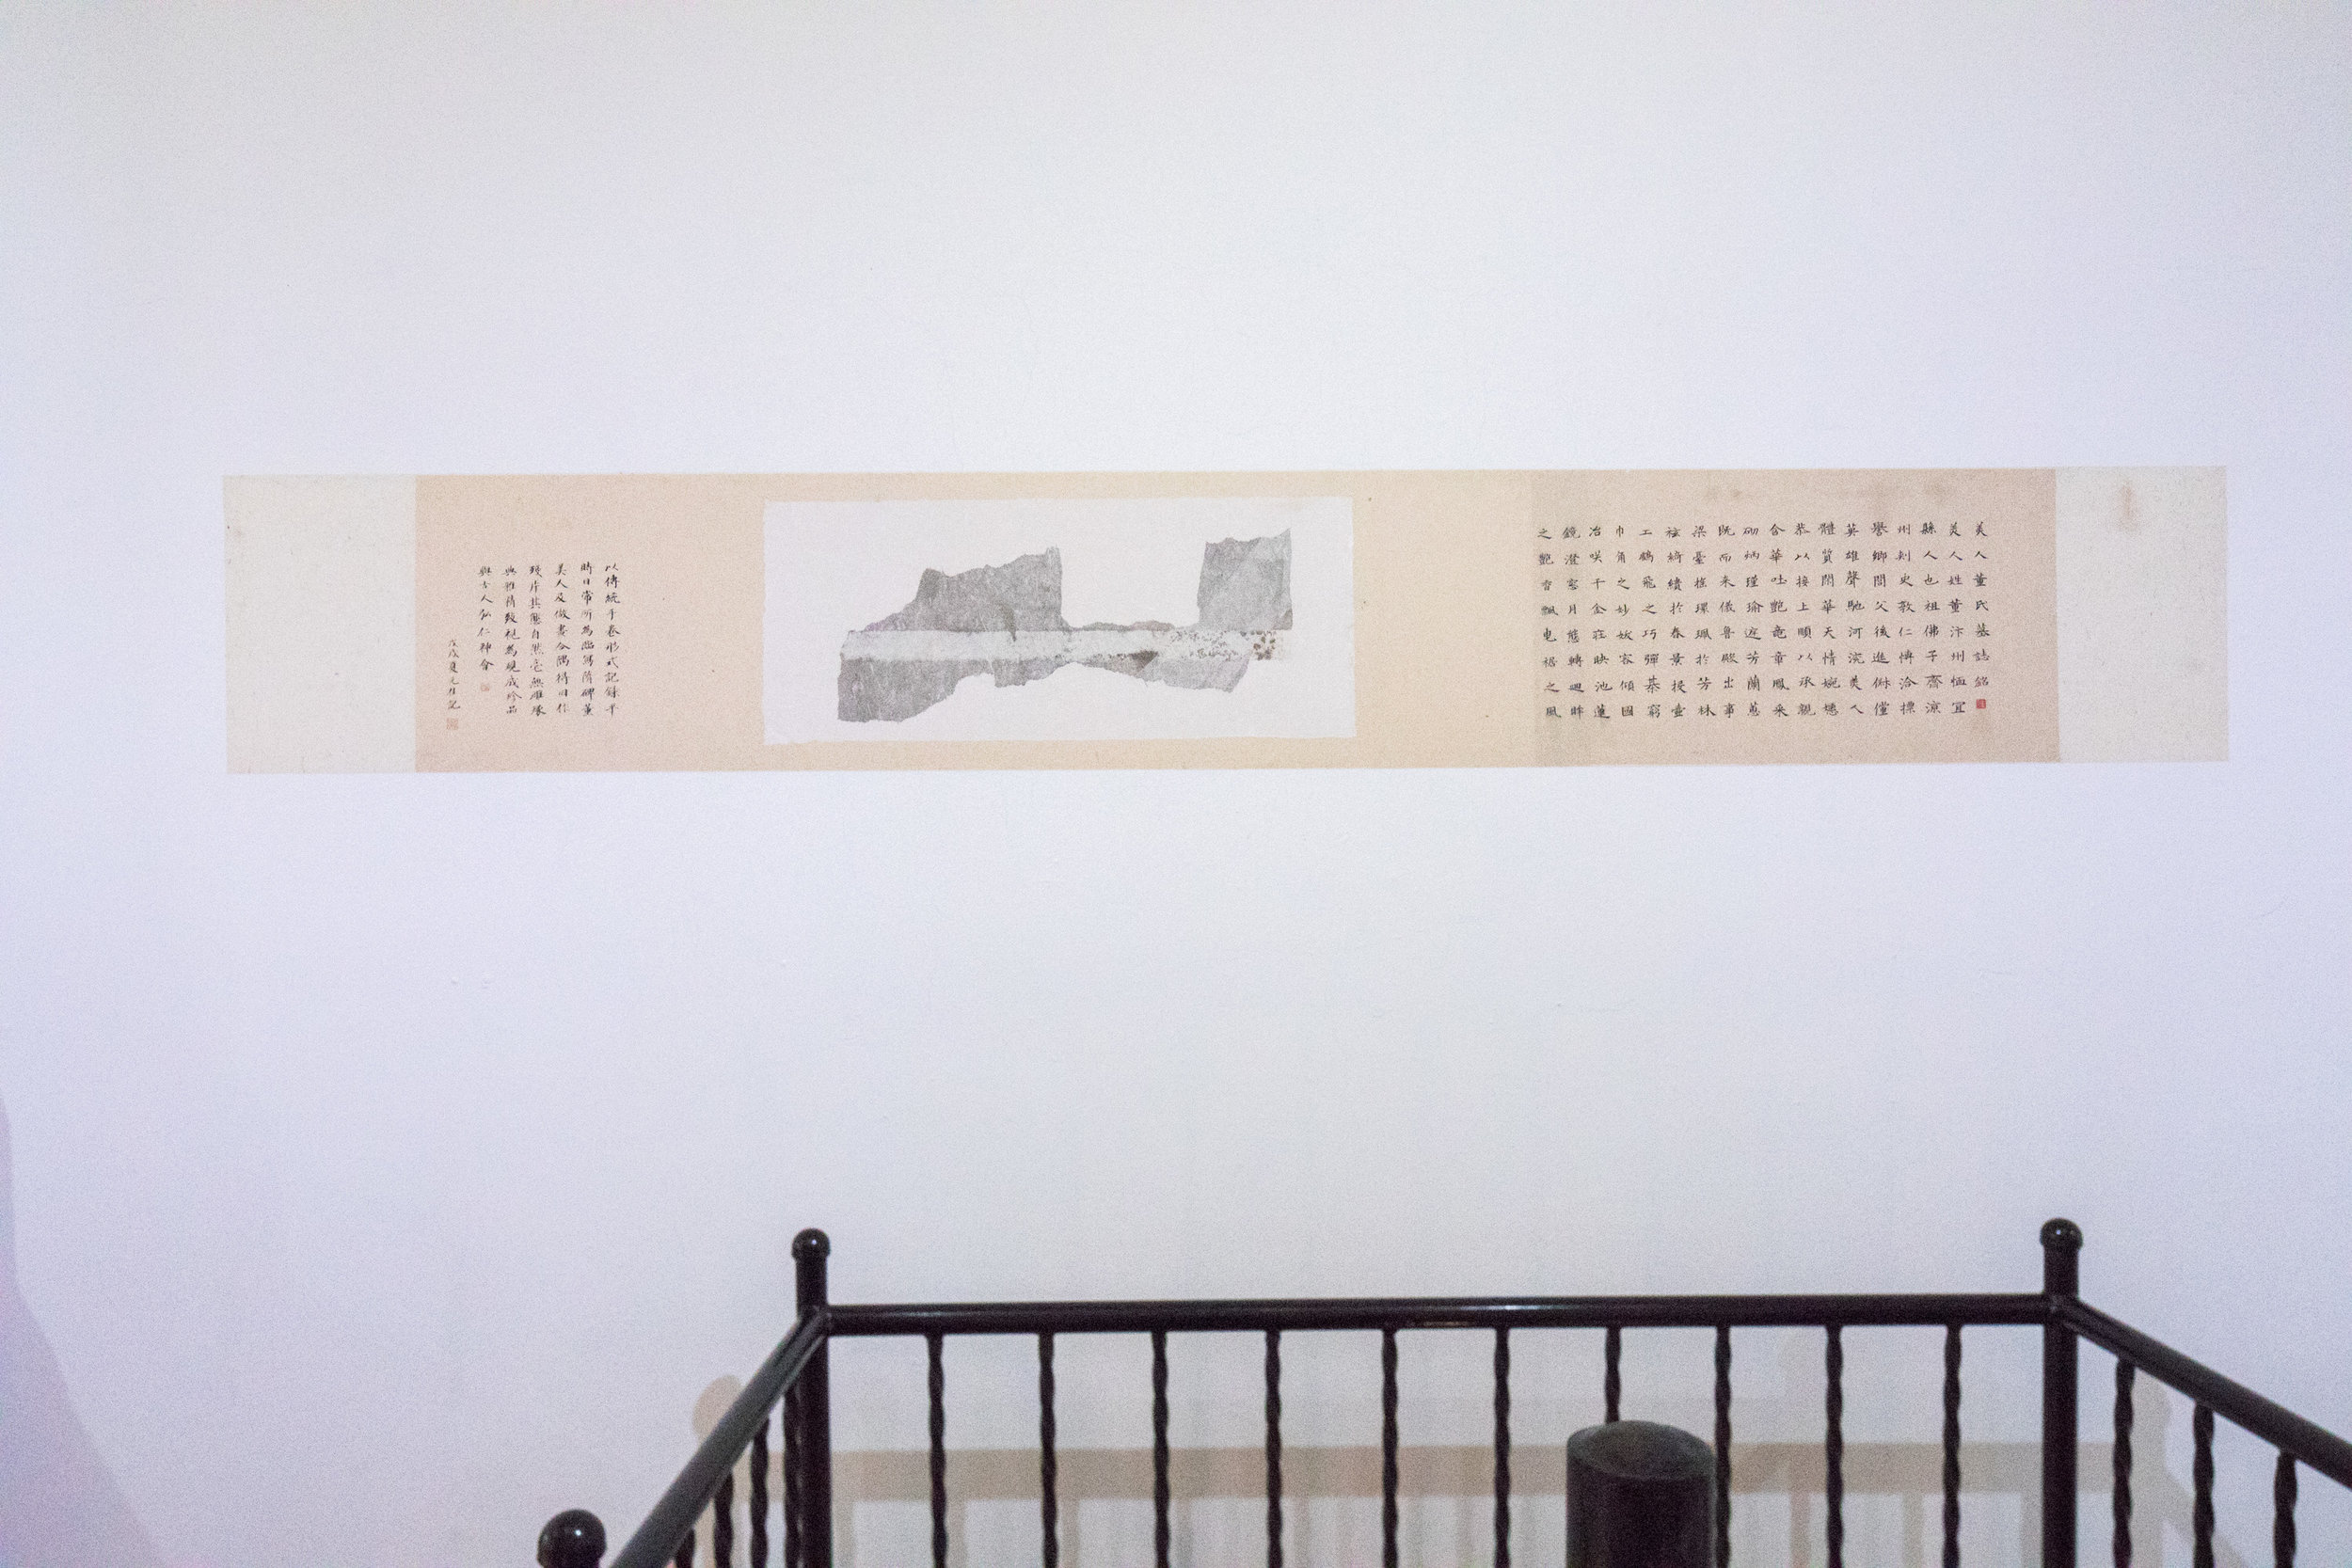 Wei Jia: A Way of Life  installation view, photograph by Nadia Peichao Lin ©Wei Jia, courtesy Fou Gallery